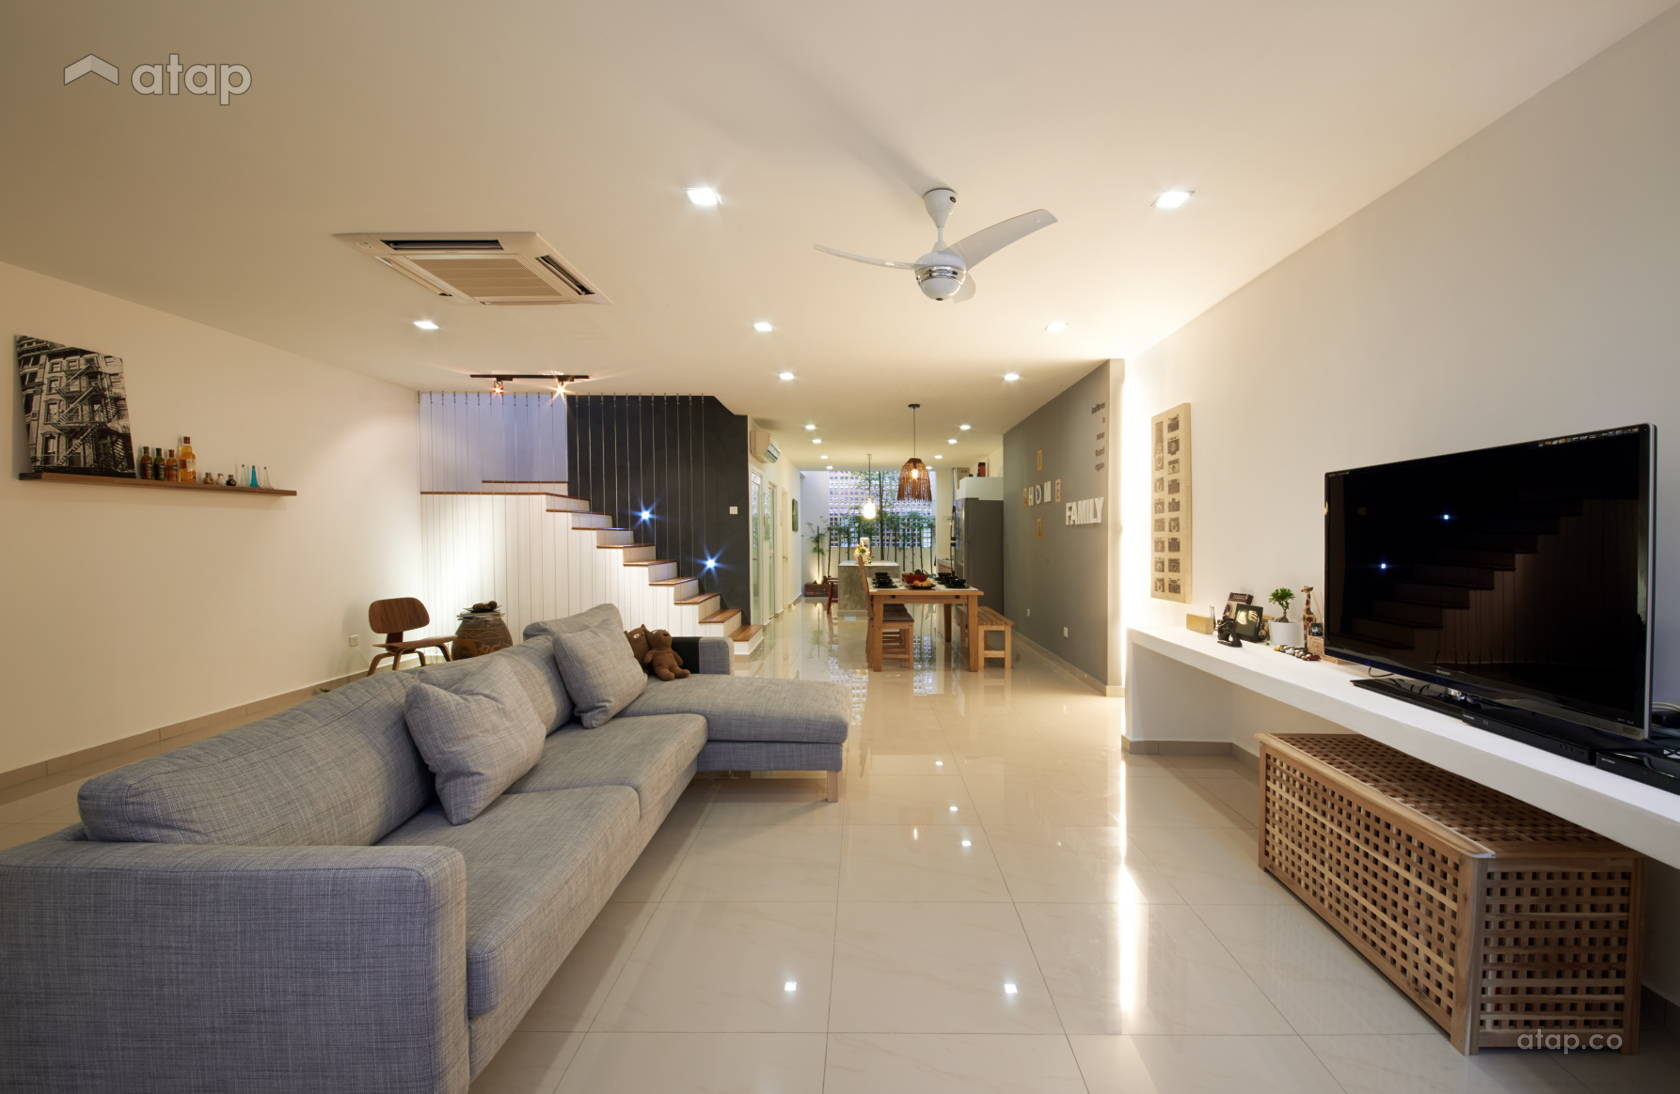 Contemporary modern living room terrace design ideas photos malaysia atap co